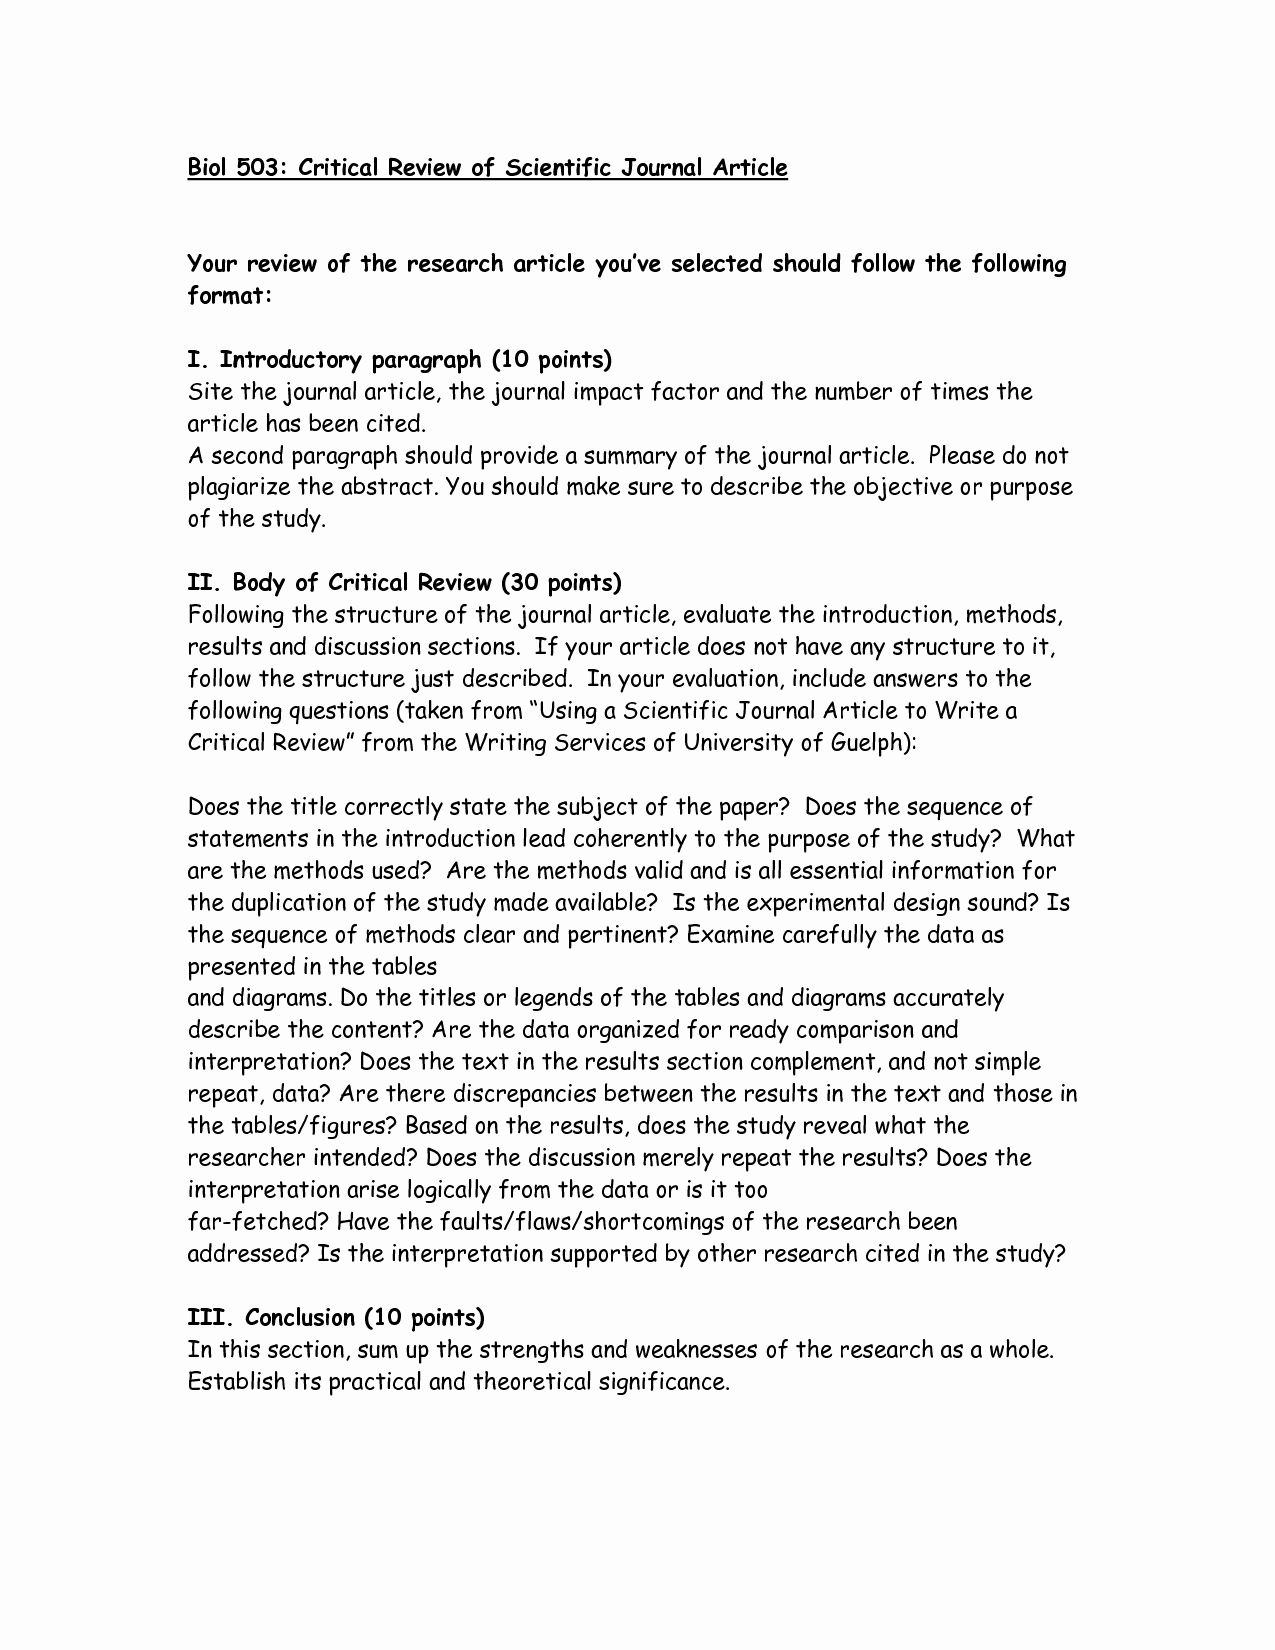 Art Critique Example Essay Lovely Critical Article Review Scientific Journal Cover Letter For Resume Introductory Paragraph How To Write A Response